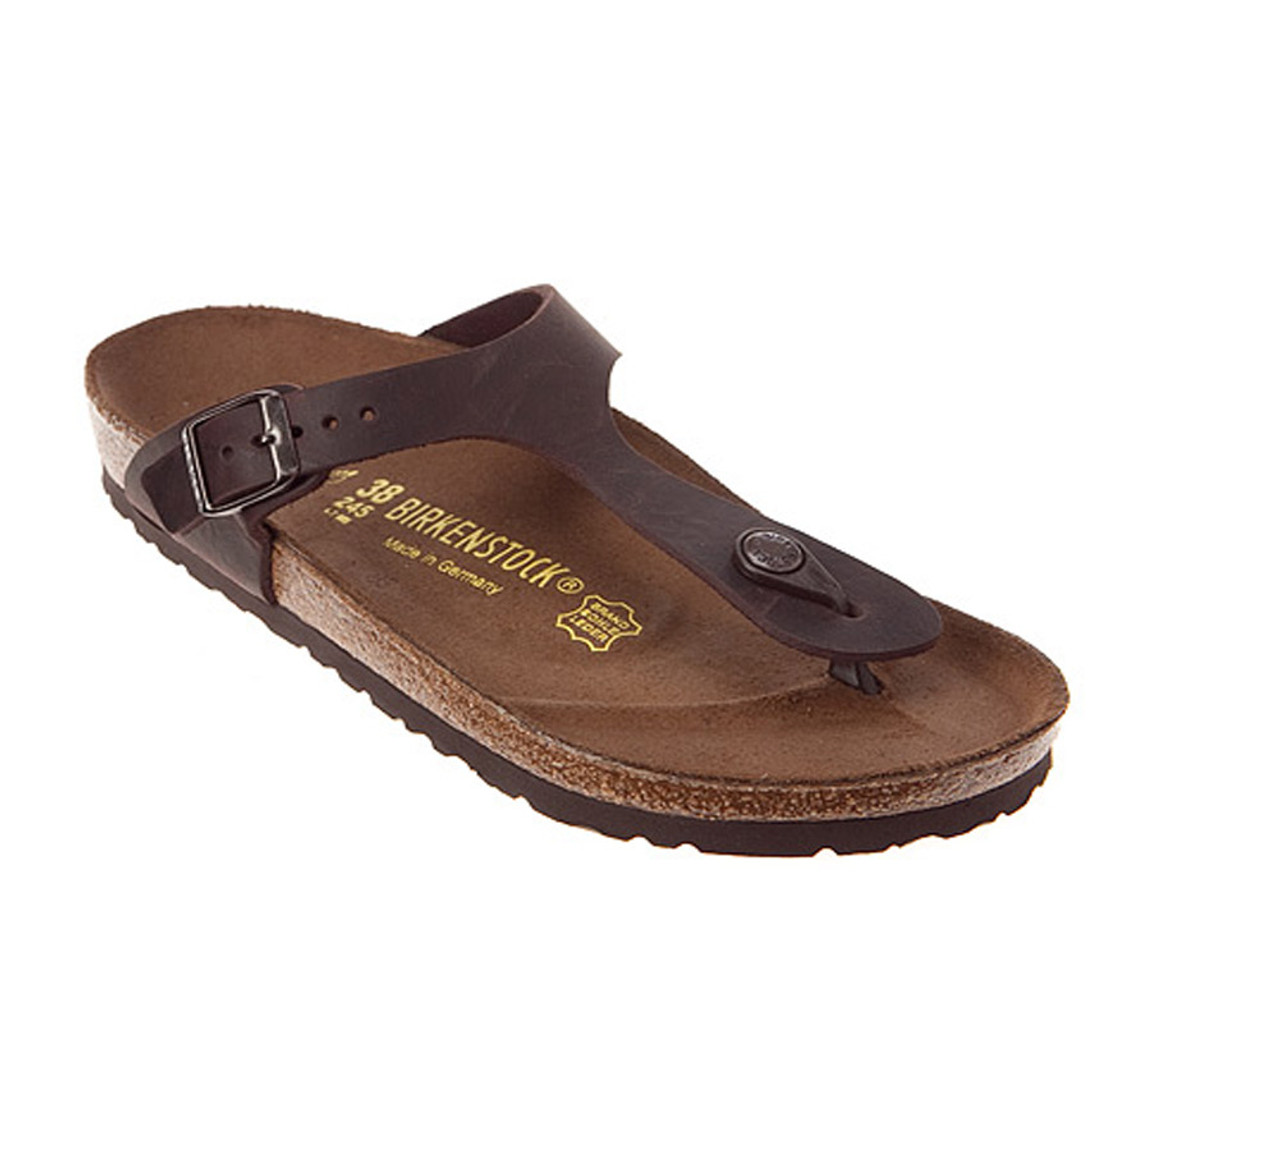 5c134ef29bf Birkenstock Women s Gizeh Thong Habana - Shop now   Shoolu.com